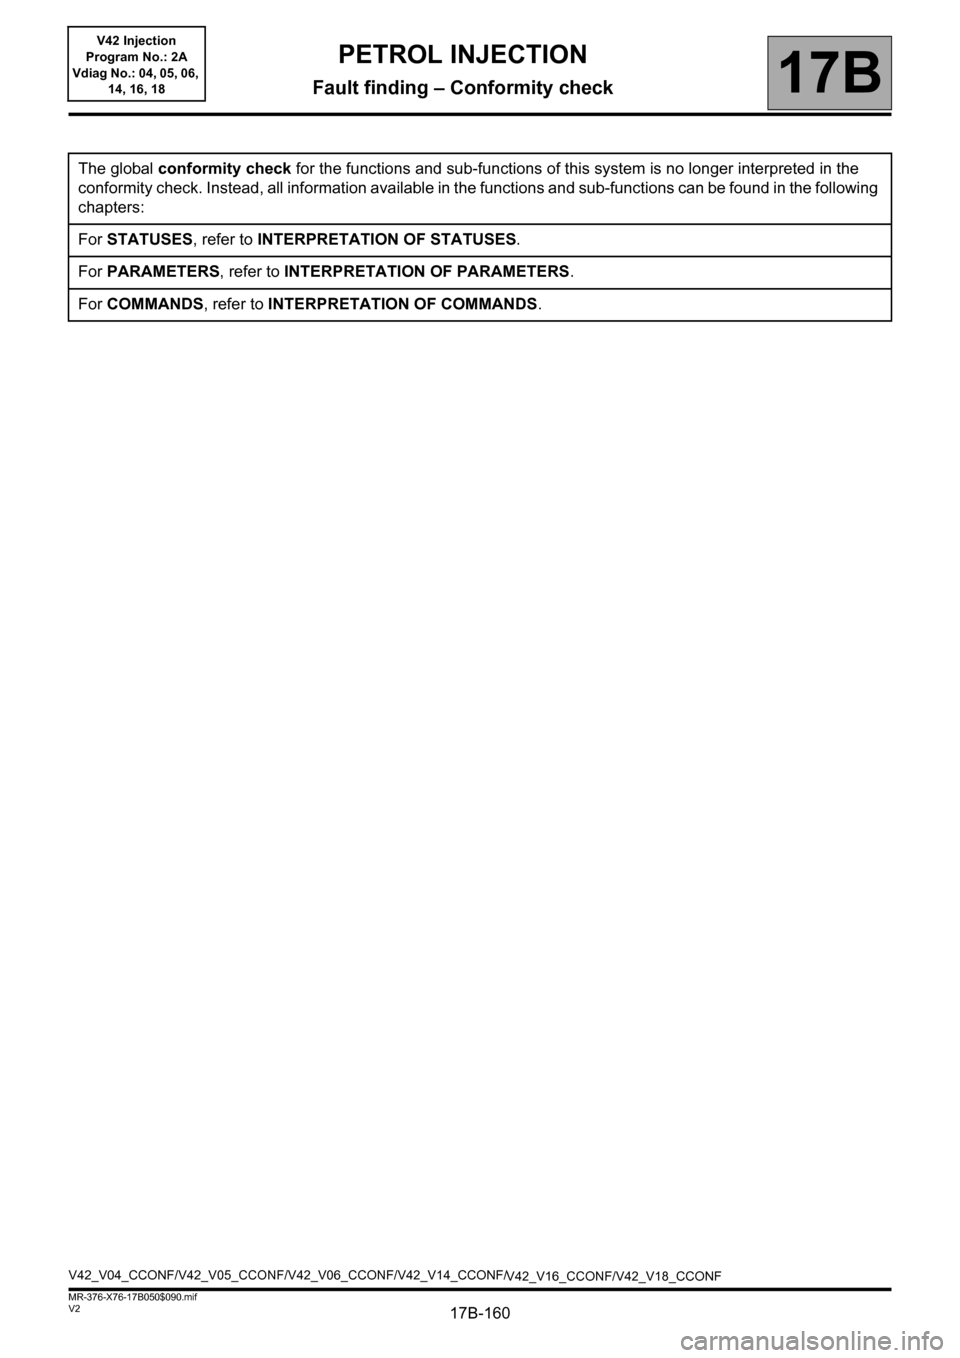 RENAULT KANGOO 2013 X61 / 2.G Petrol V42 Injection Workshop Manual, Page 160